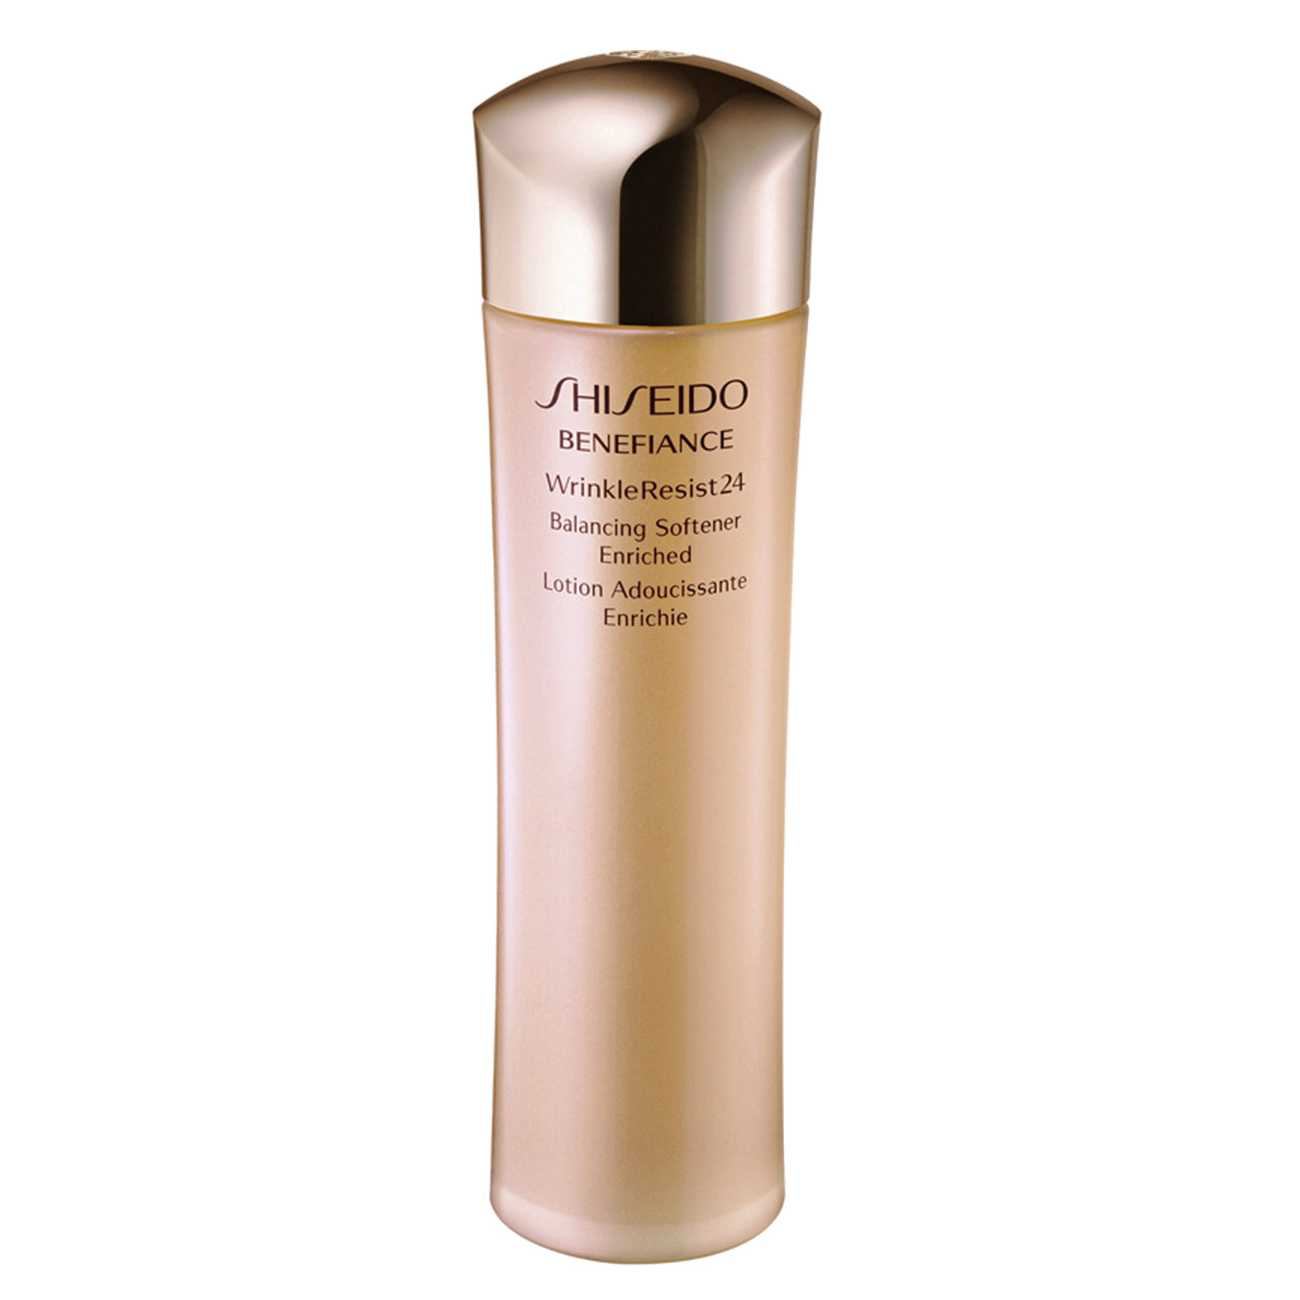 Benefiance Wrinkle Resist 24 Balancing Softner Enriched 150 Ml Shiseido imagine 2021 bestvalue.eu